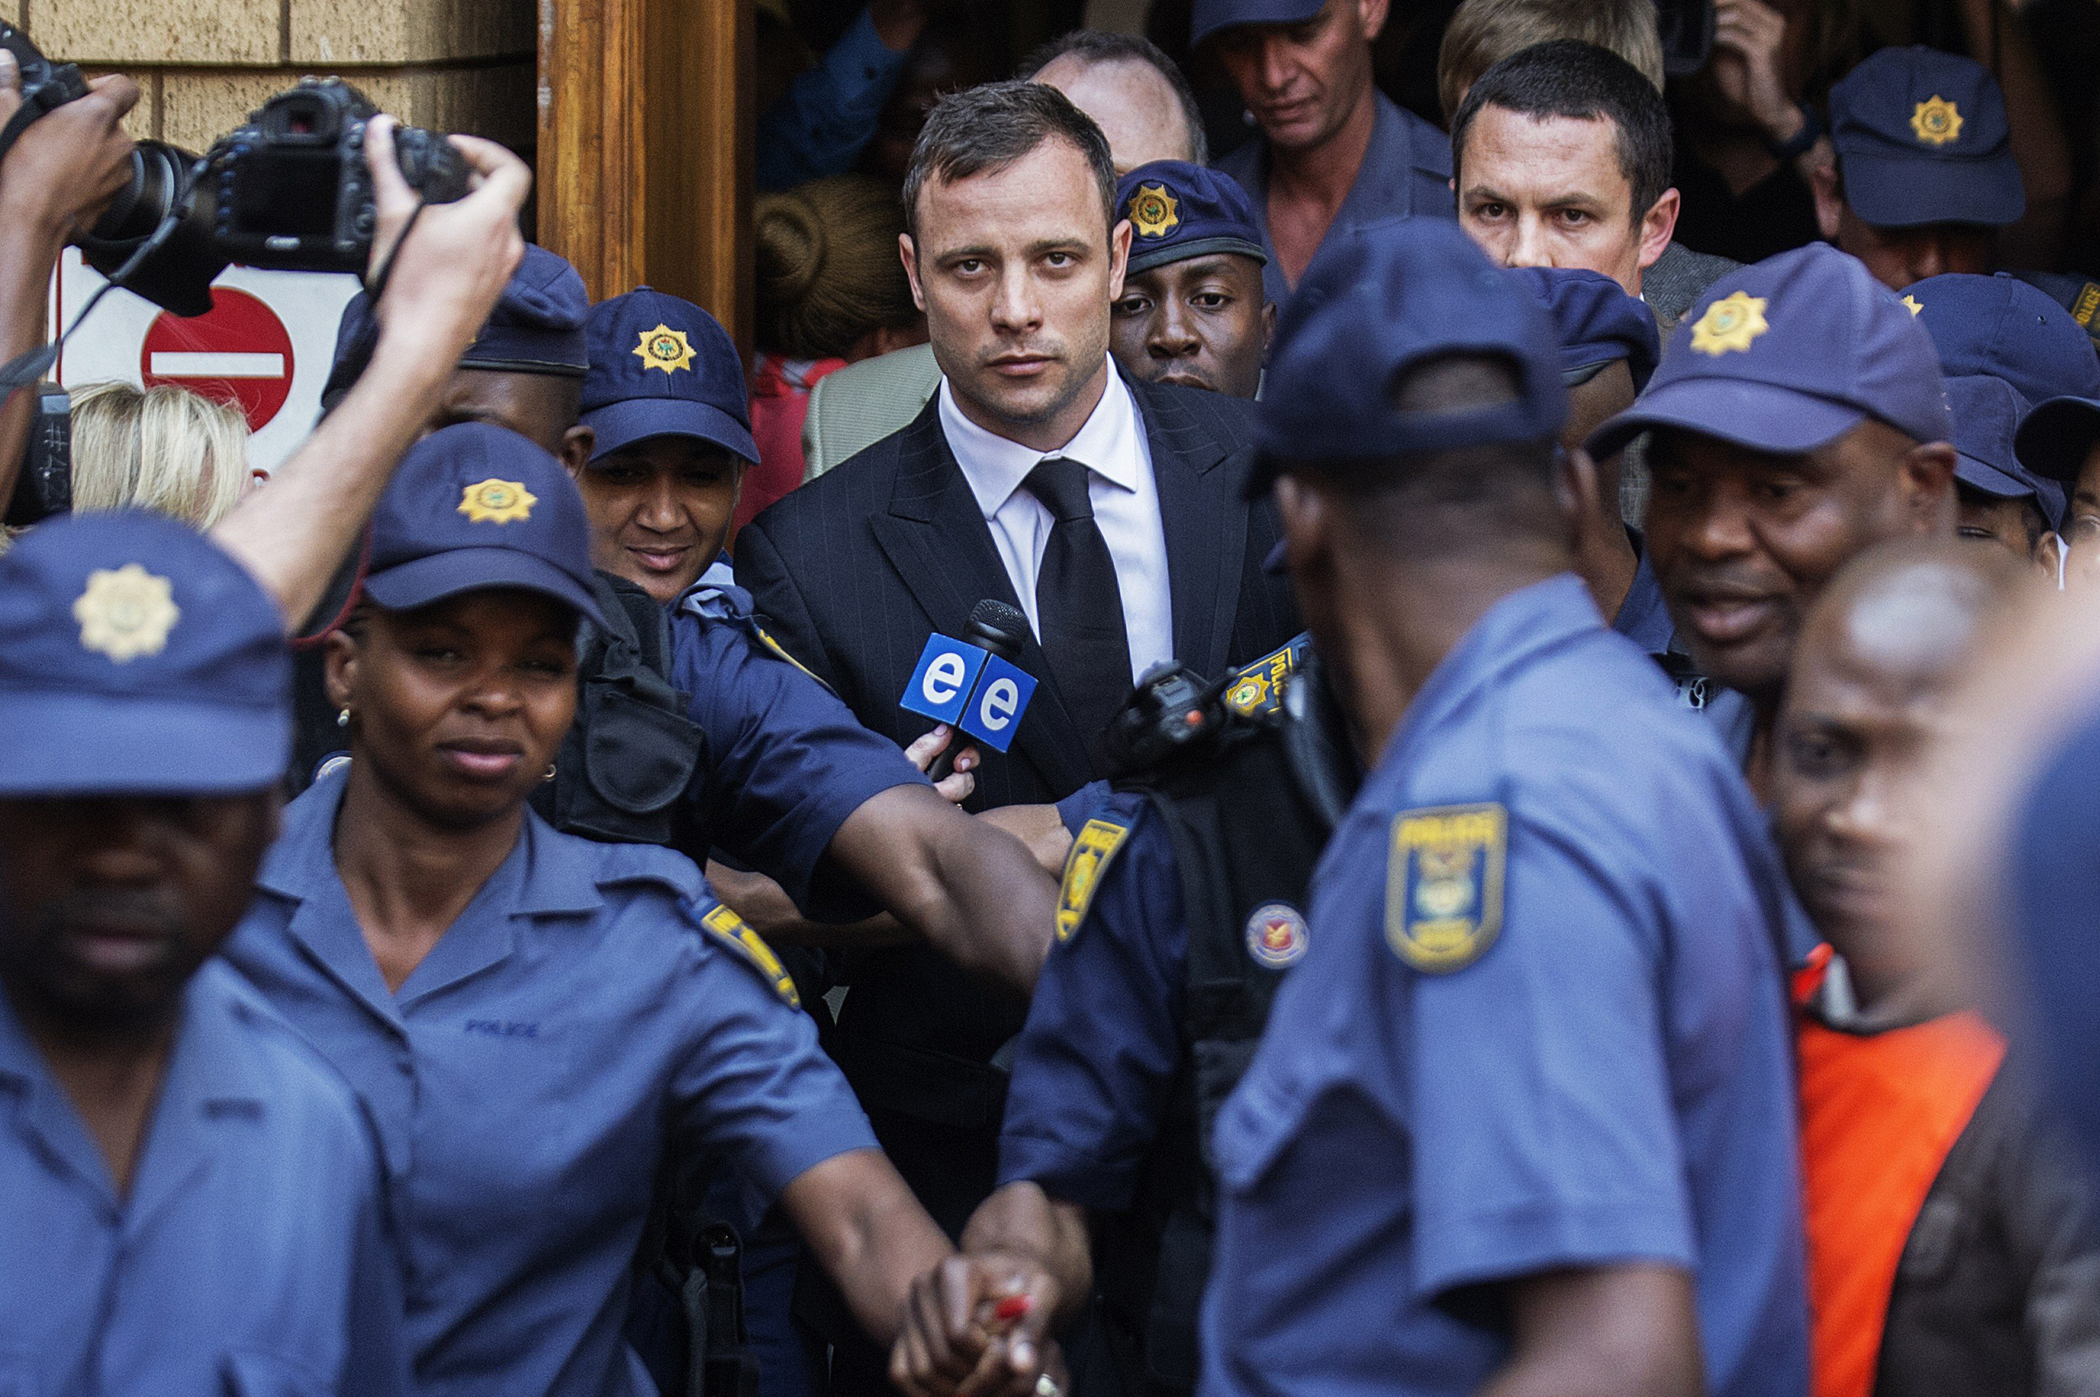 South African Paralympian athlete Oscar Pistorius leaves the High Court after the verdict in his murder trial where he was found guilty of culpable homicide in Pretoria, South Africa on Sept. 12, 2014.